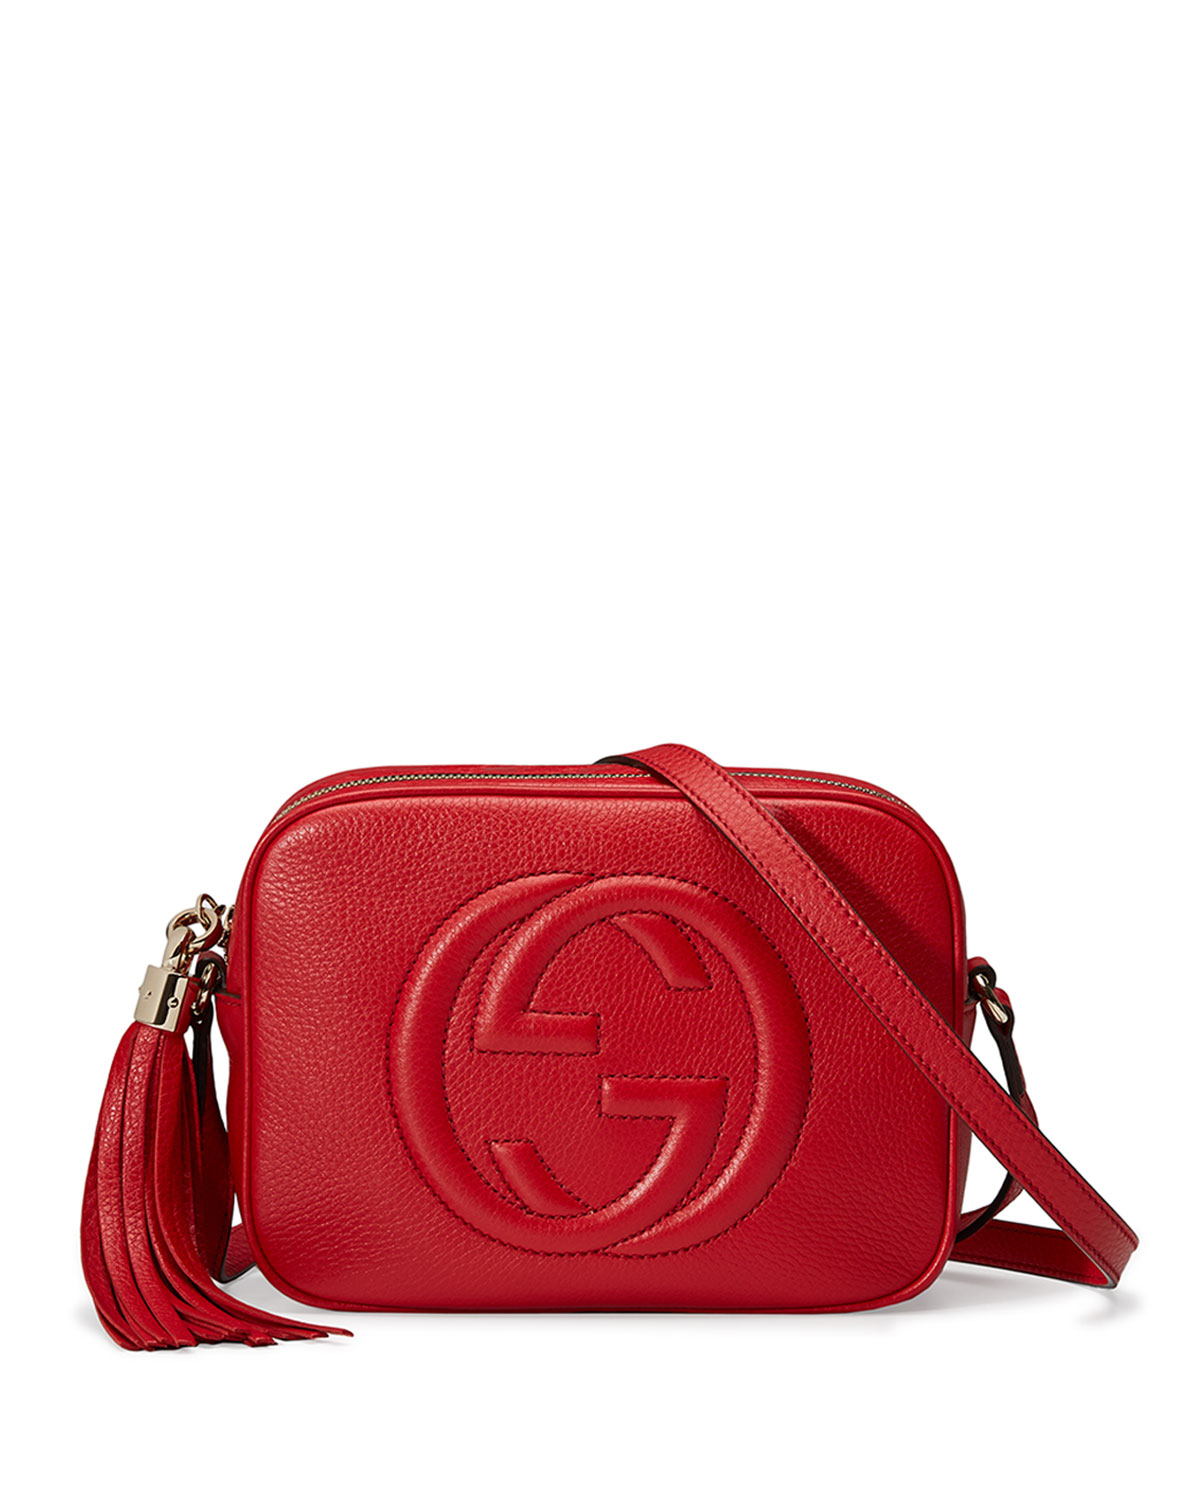 e4c17c2ea5e4e Gucci Soho Leather Disco Bag